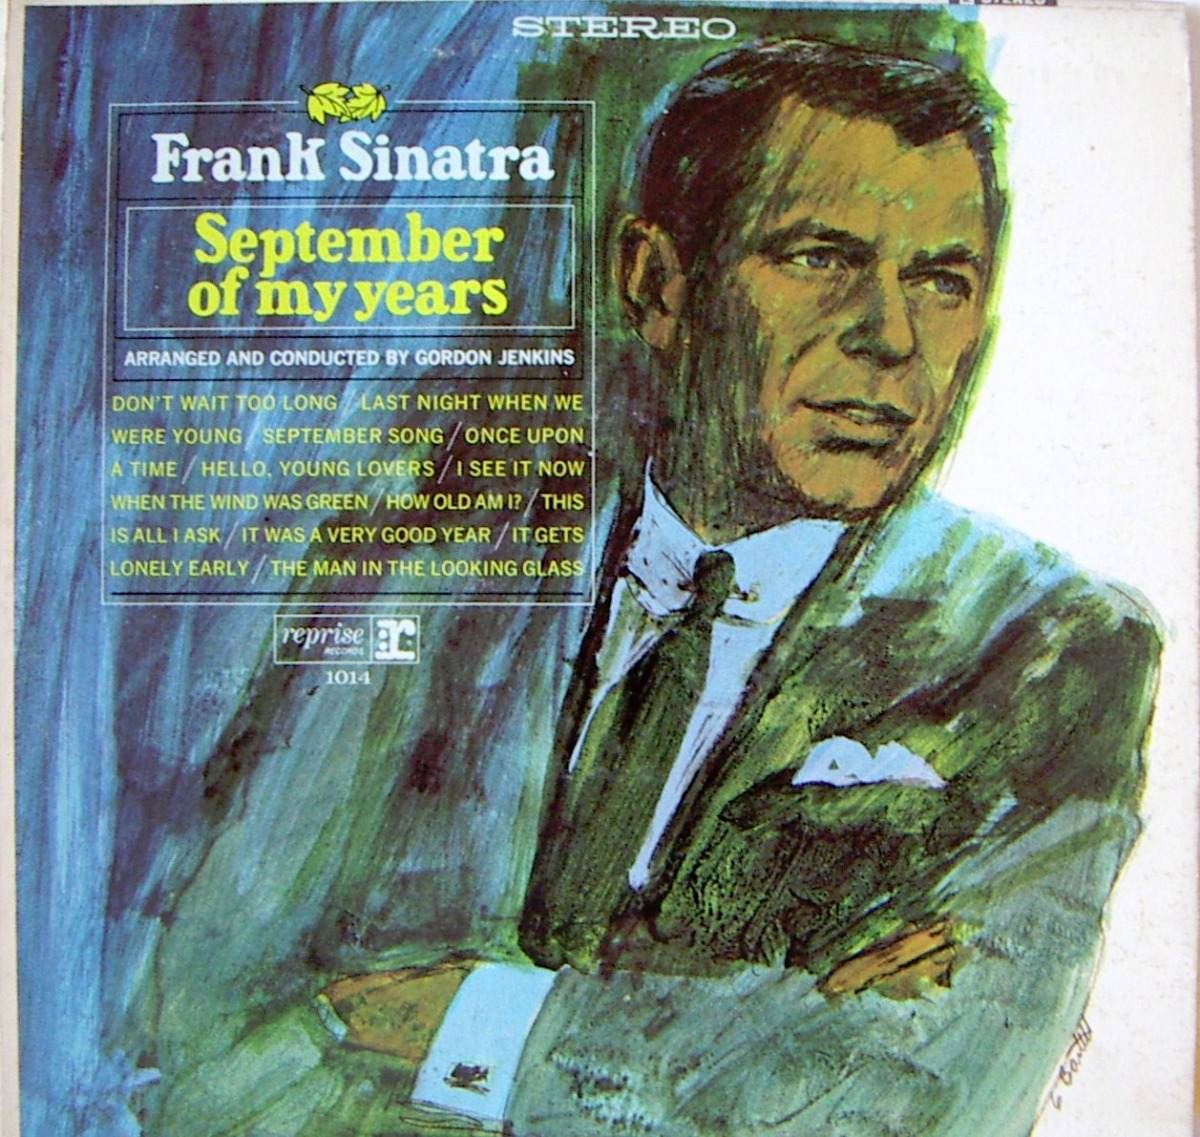 A Wrenching Meditation On Getting Older: Frank Sinatra's September Of My Years